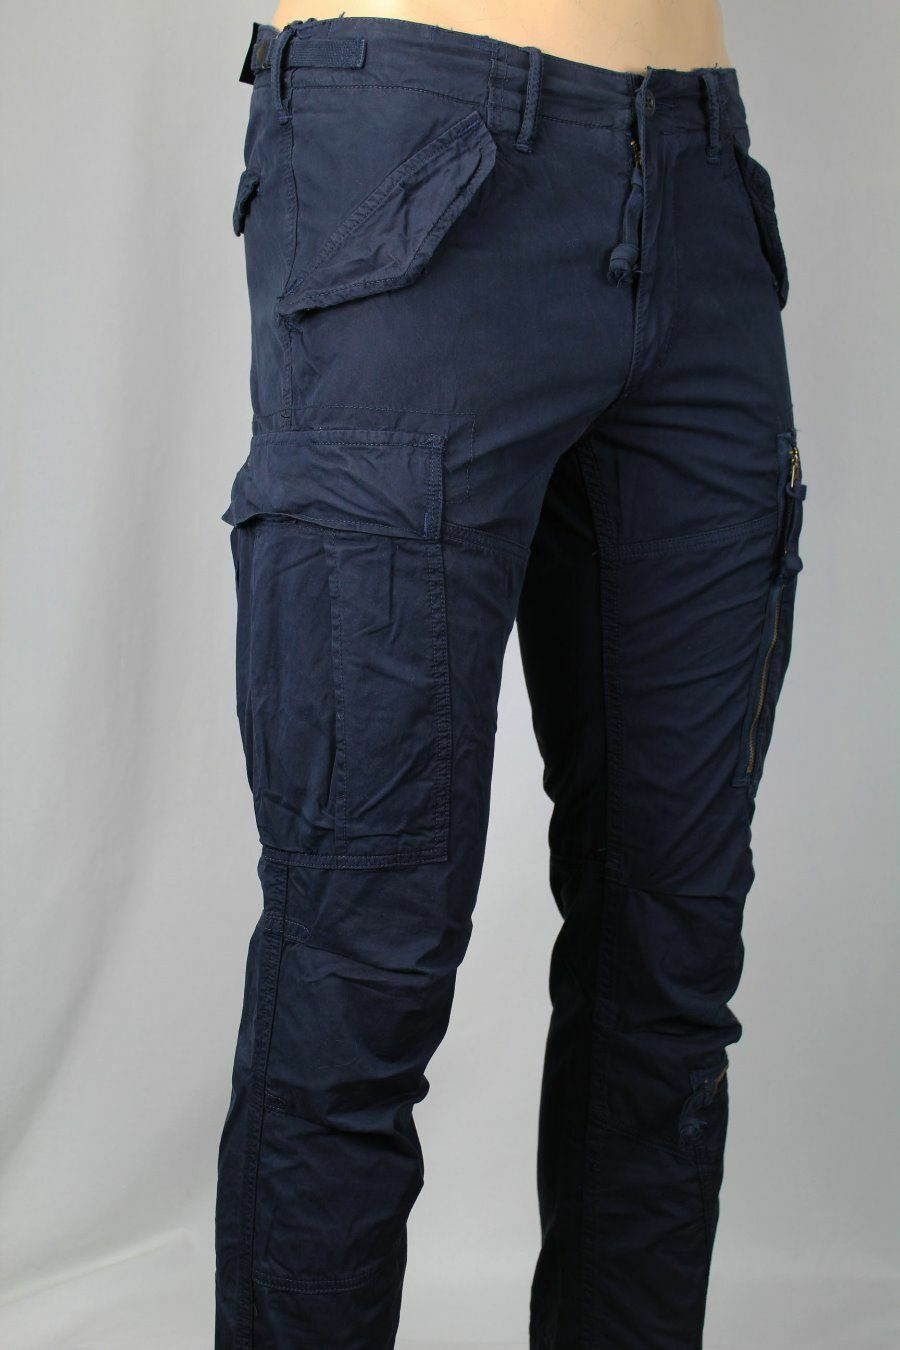 Polo Ralph Lauren Navy bluee Straight Fit Cargo Pants Snaps Zip NWT